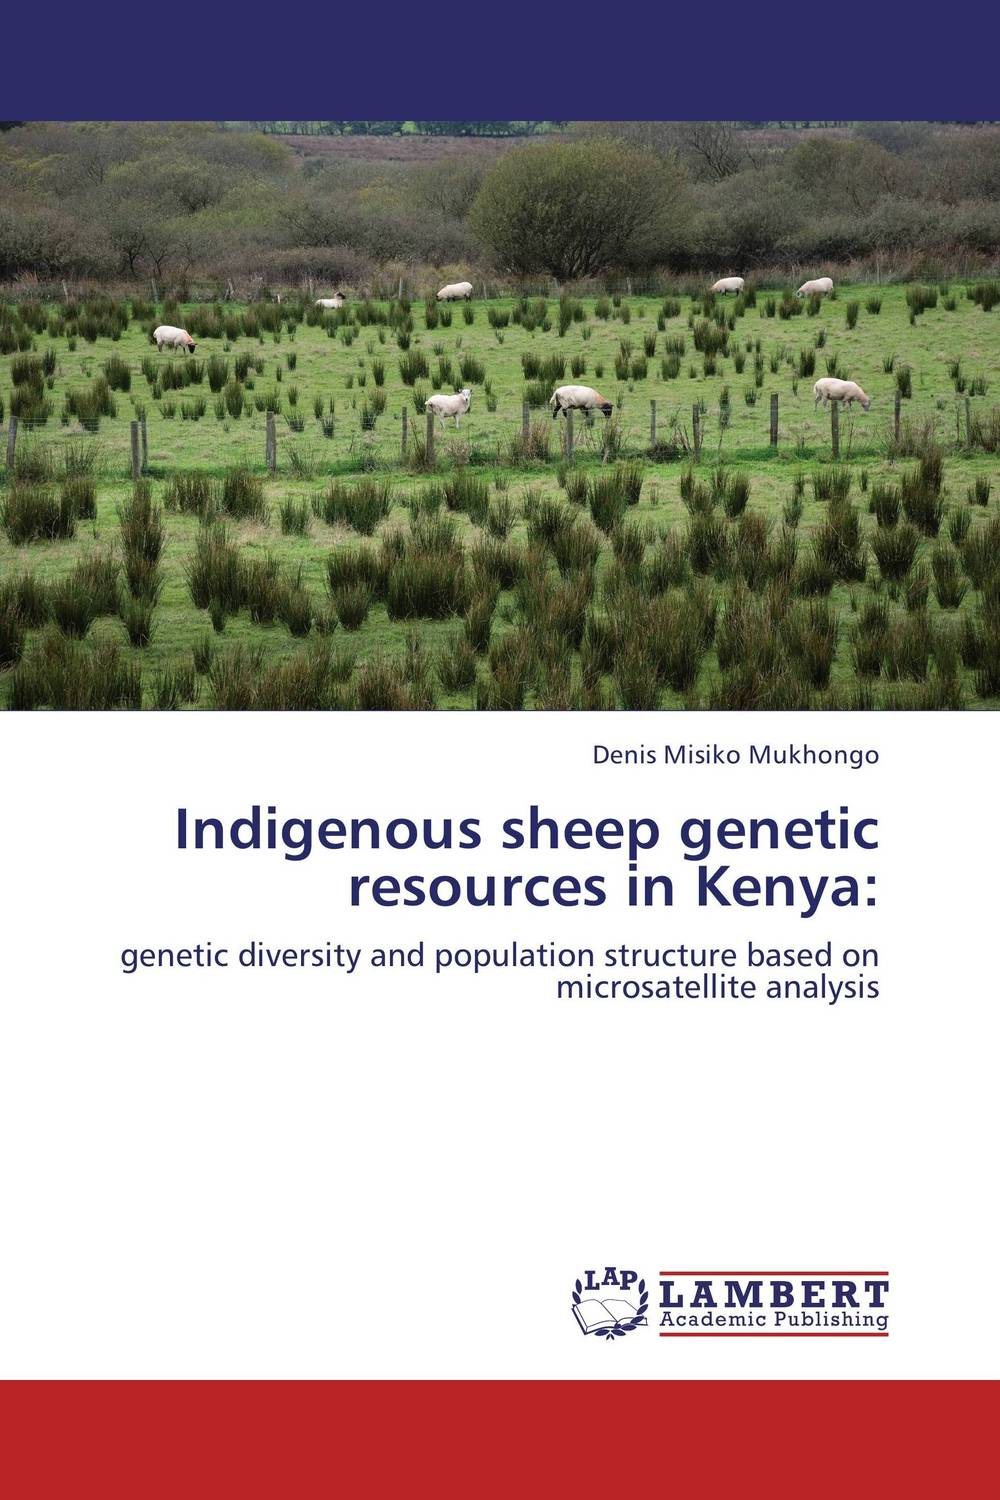 Indigenous sheep genetic resources in Kenya: building value through human resources